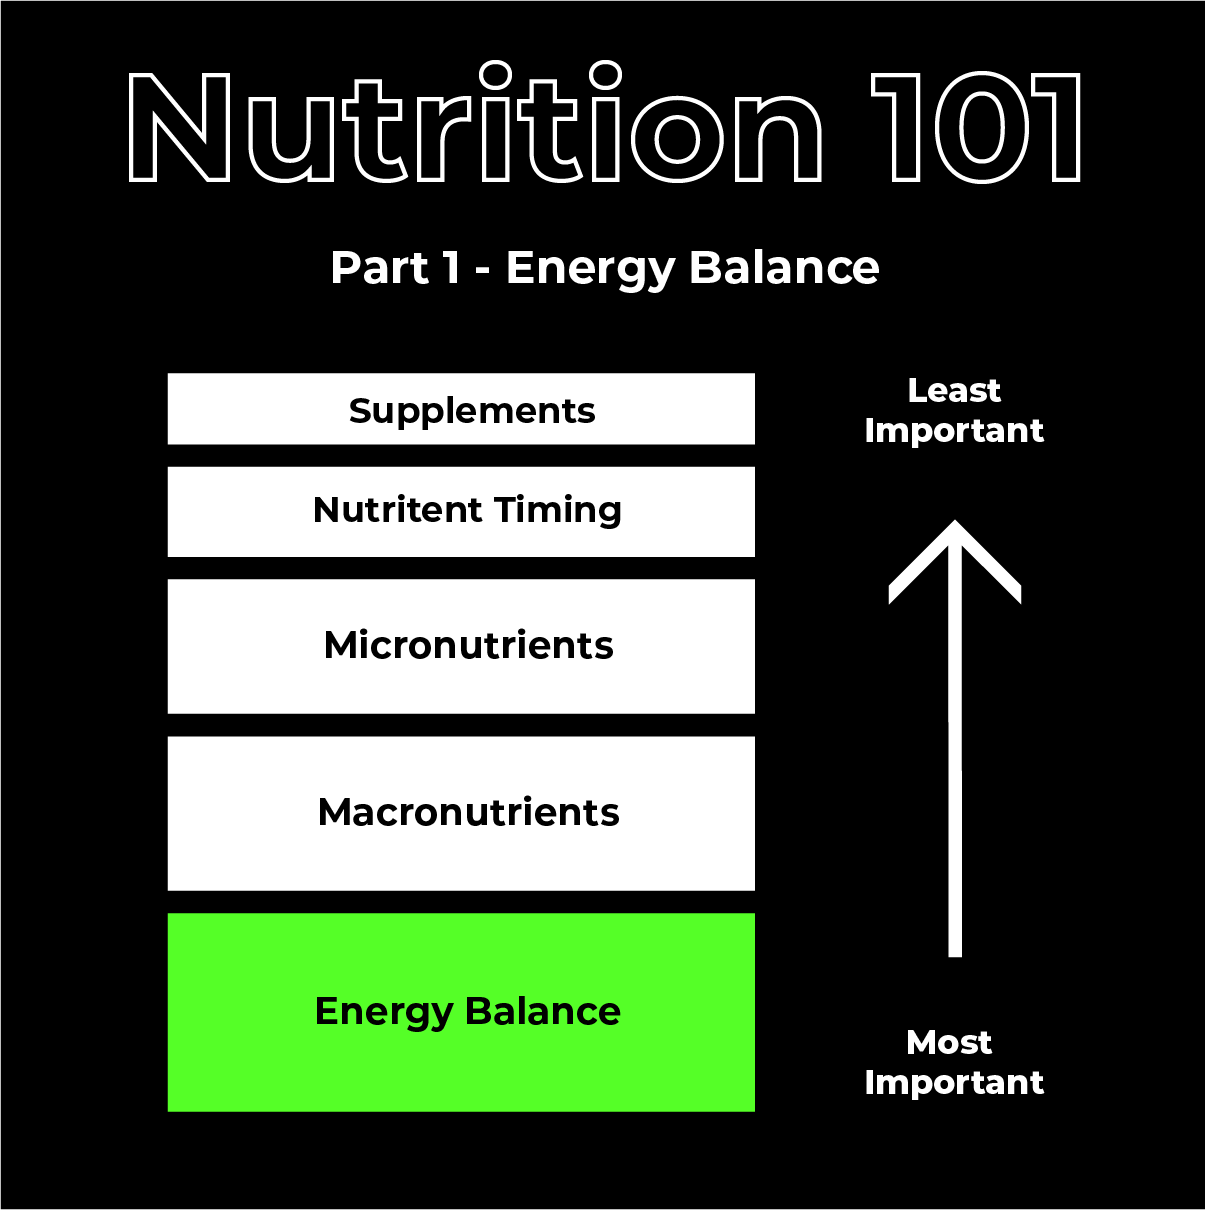 Ladder showing energy expenditure, macronutrients, micronutrients, nutrient timing and supplements as the 5 important building blocks of a nutrition plan. Energy Balance, highlighted in green, being the most important and supplements being the least important.